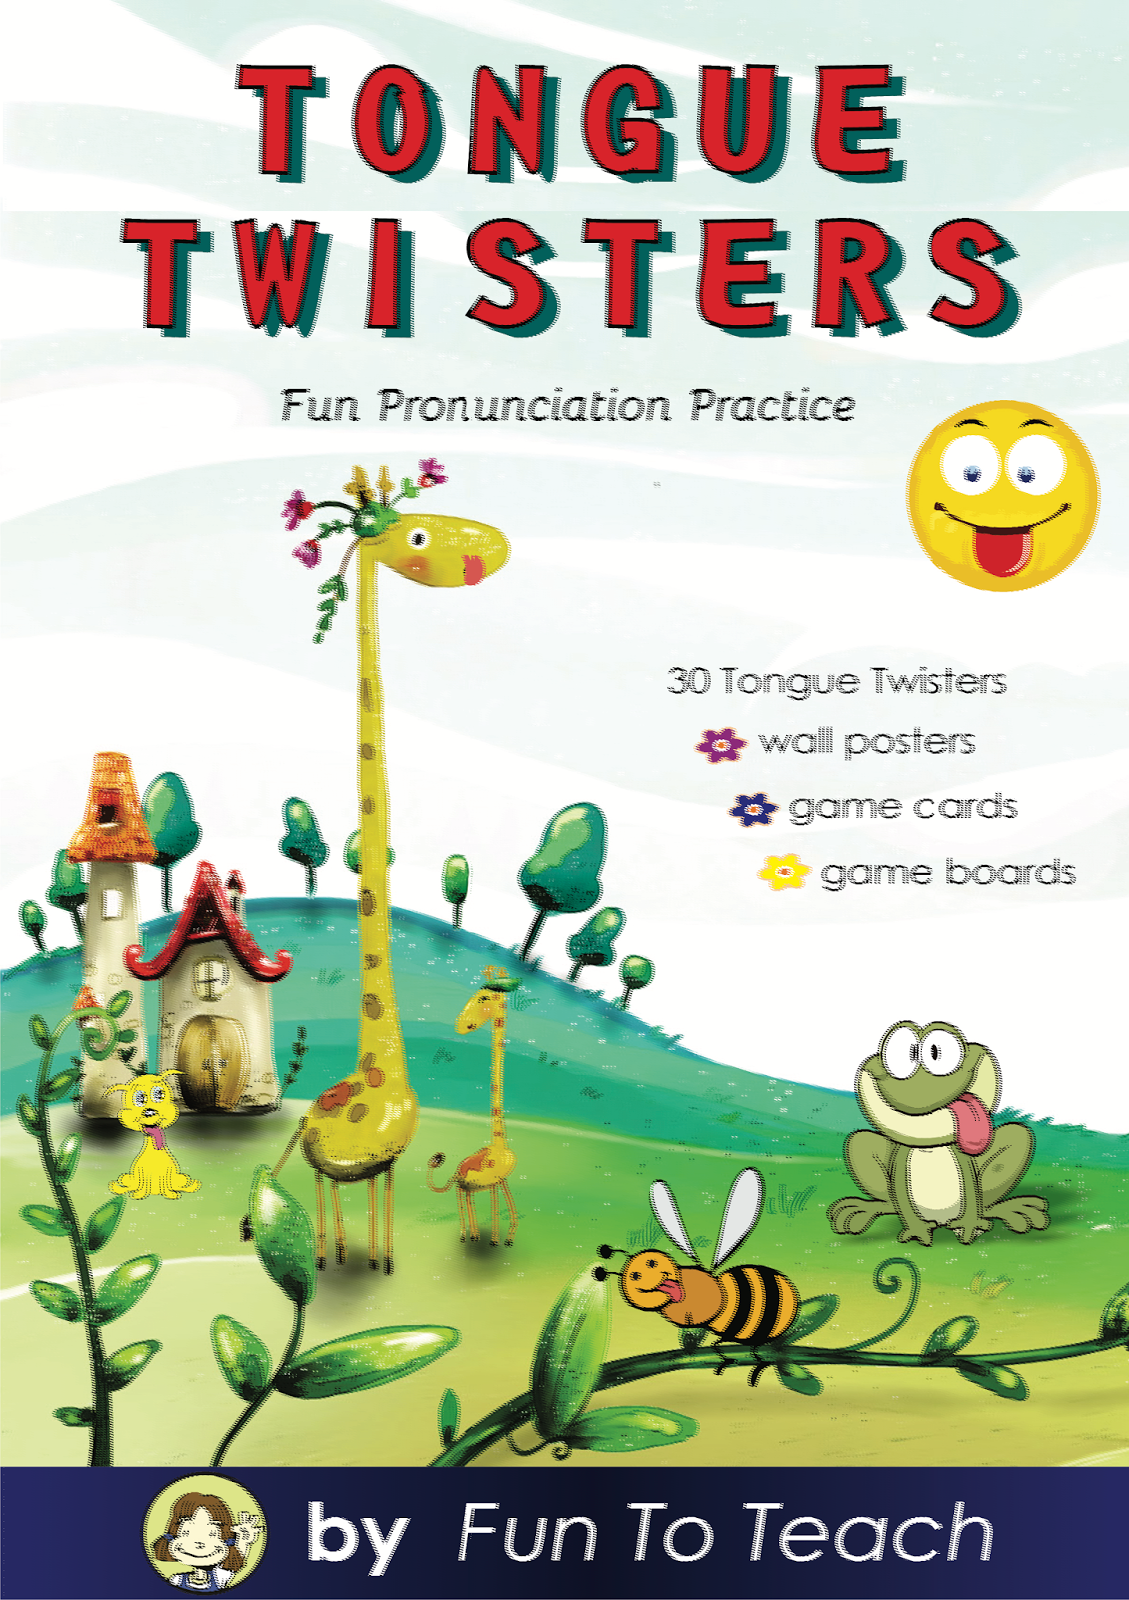 http://www.teacherspayteachers.com/Product/Tongue-Twisters-Sample-Freebie-1327867